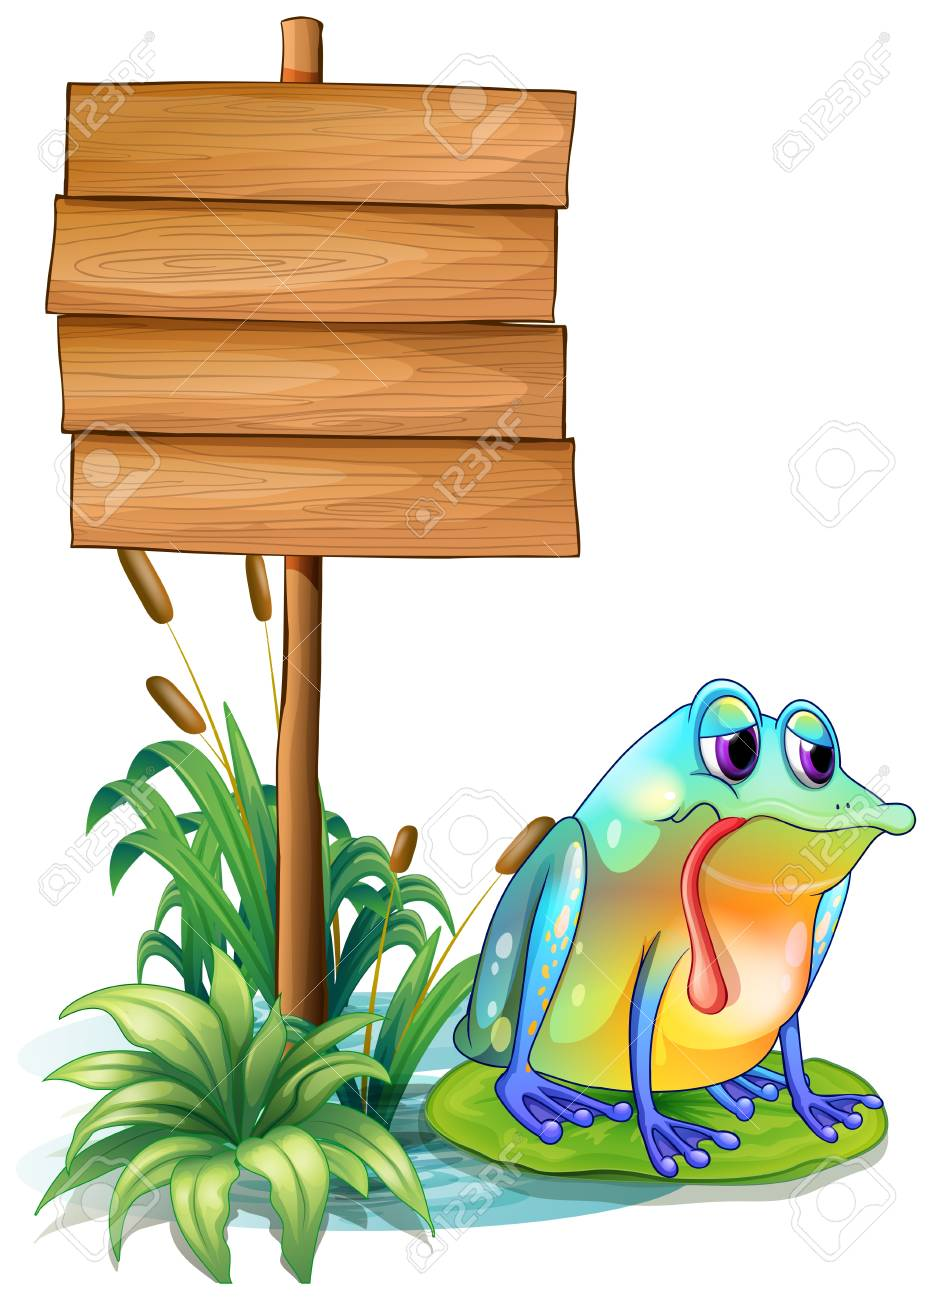 Illustration of a lonely frog beside the empty board on a white background Stock Vector - 18287719